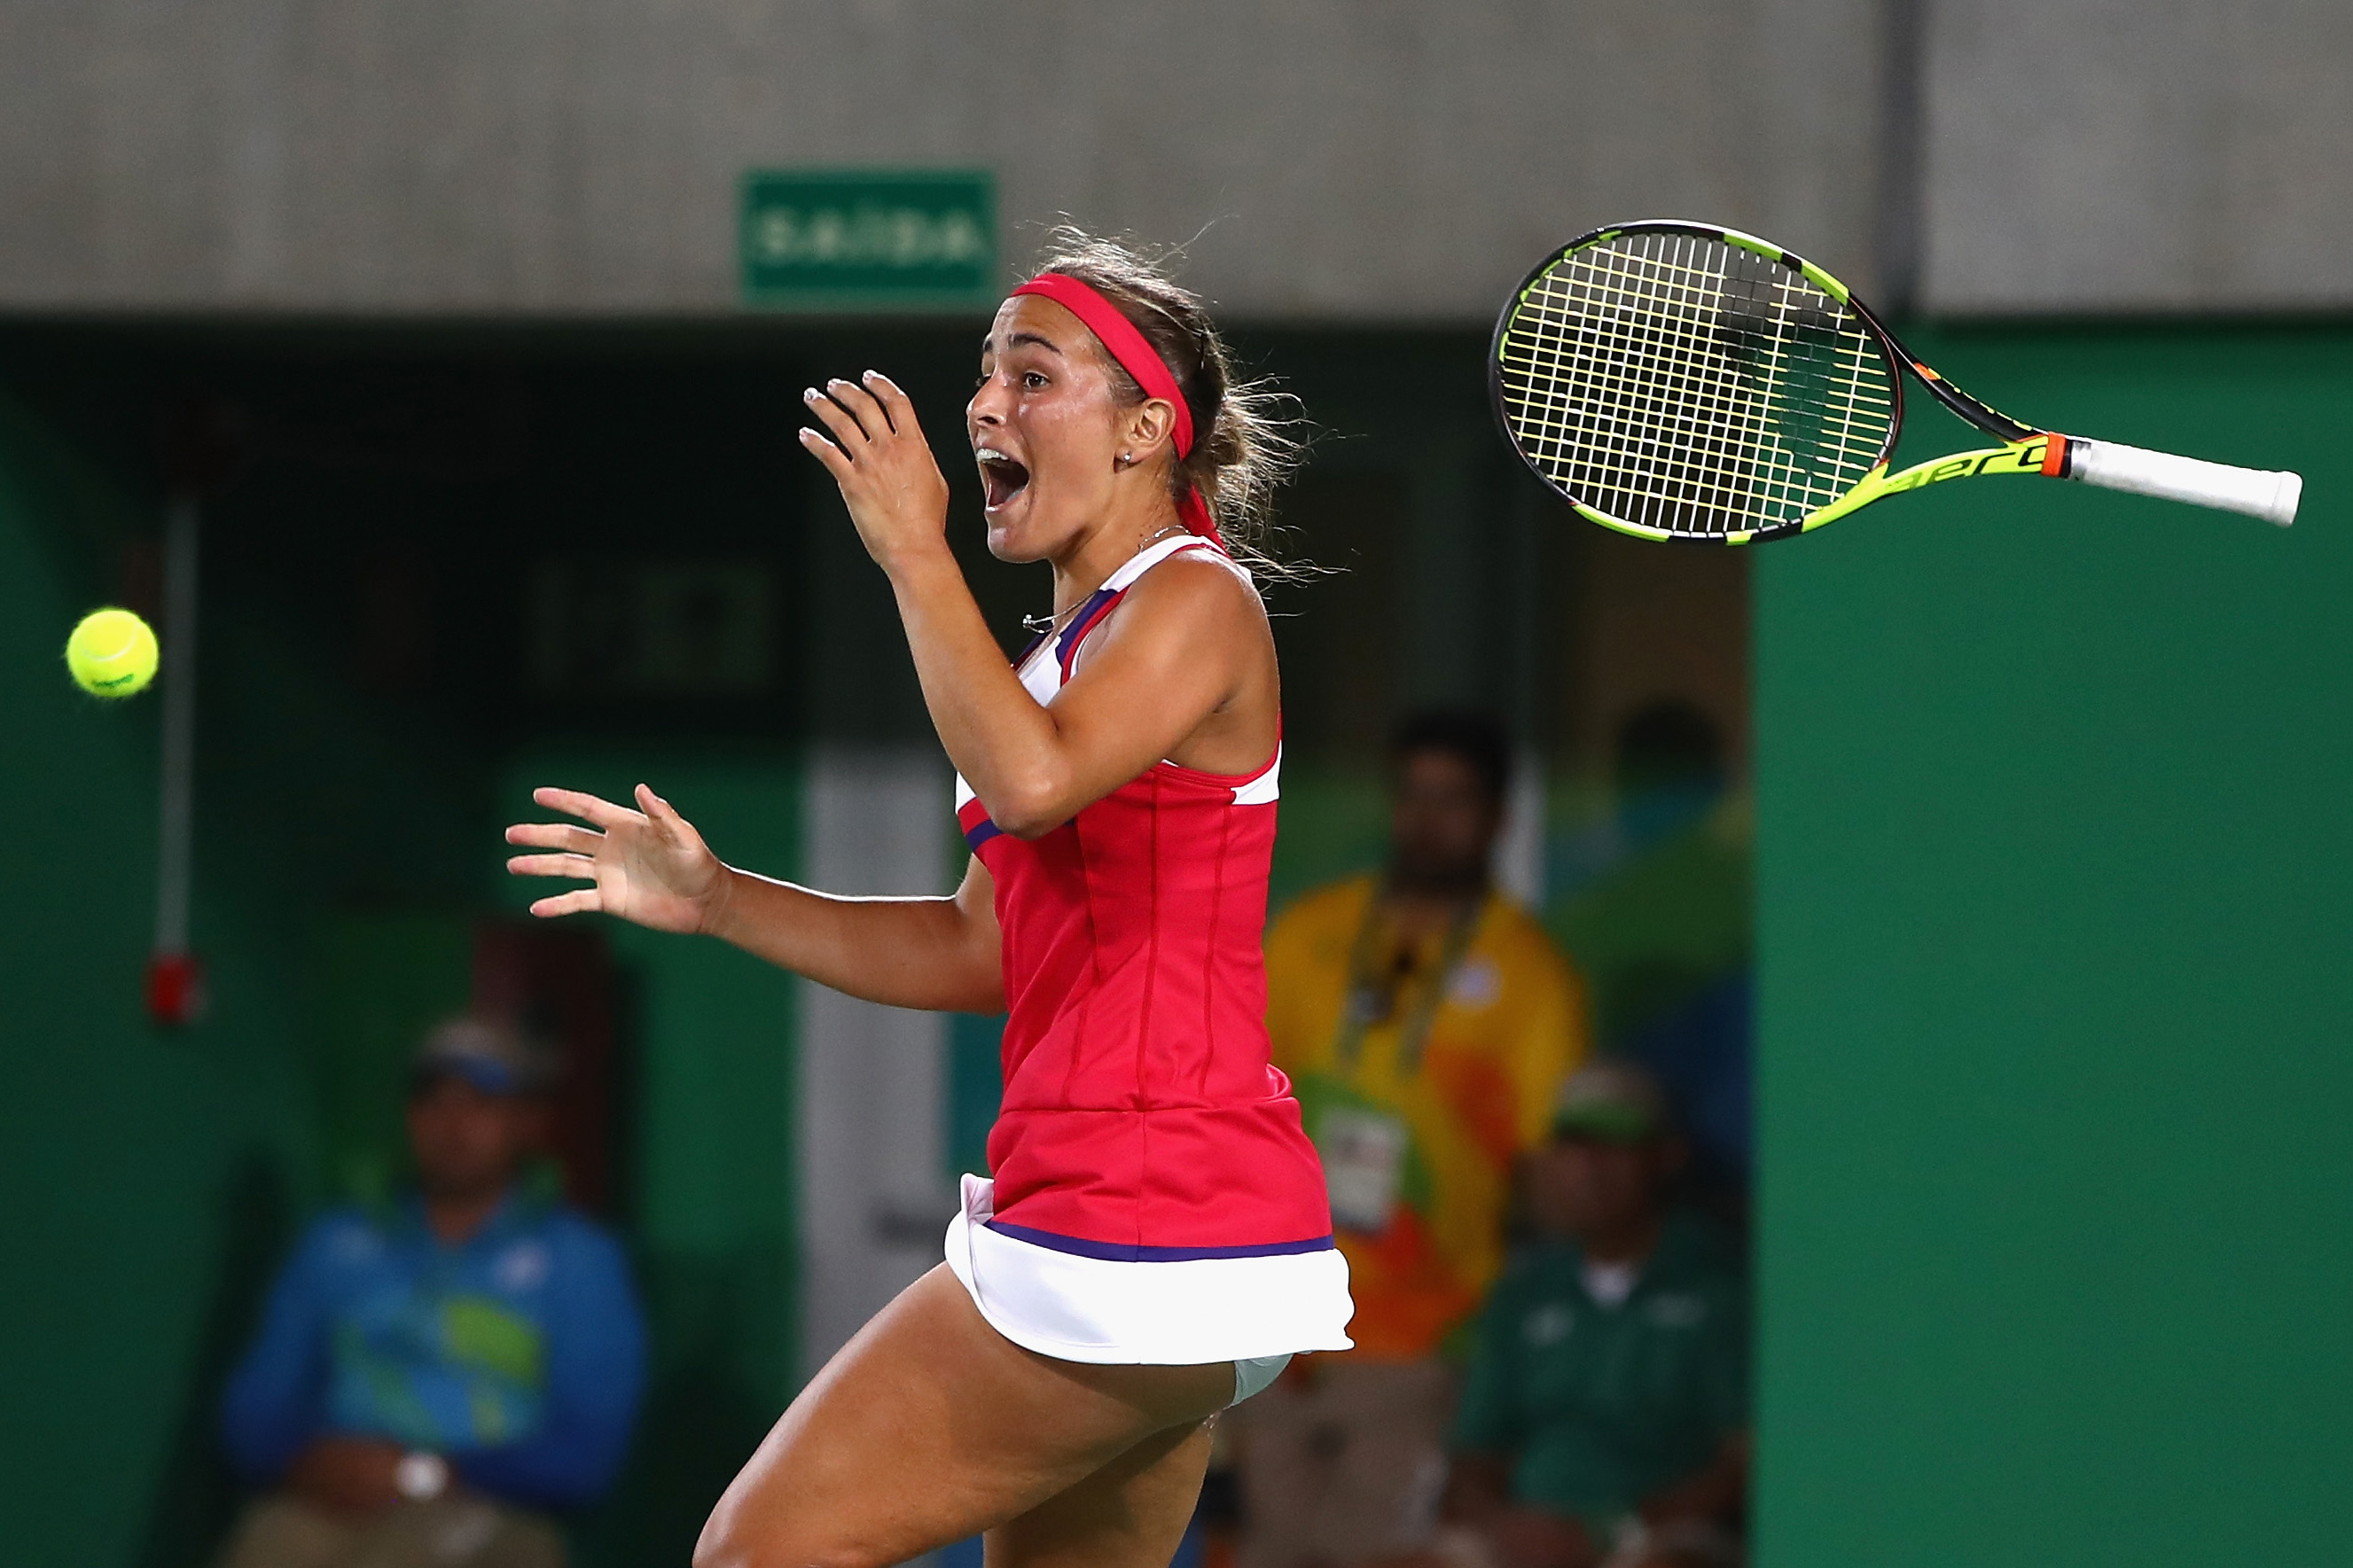 Puig came out of nowhere to win Puerto Rico's first–ever gold medal at the Olympic Games. She upset Angelique Kerber in the gold–medal match after knocking off the likes of Garbine Muguruza and Petra Kvitova earlier in the tournament.